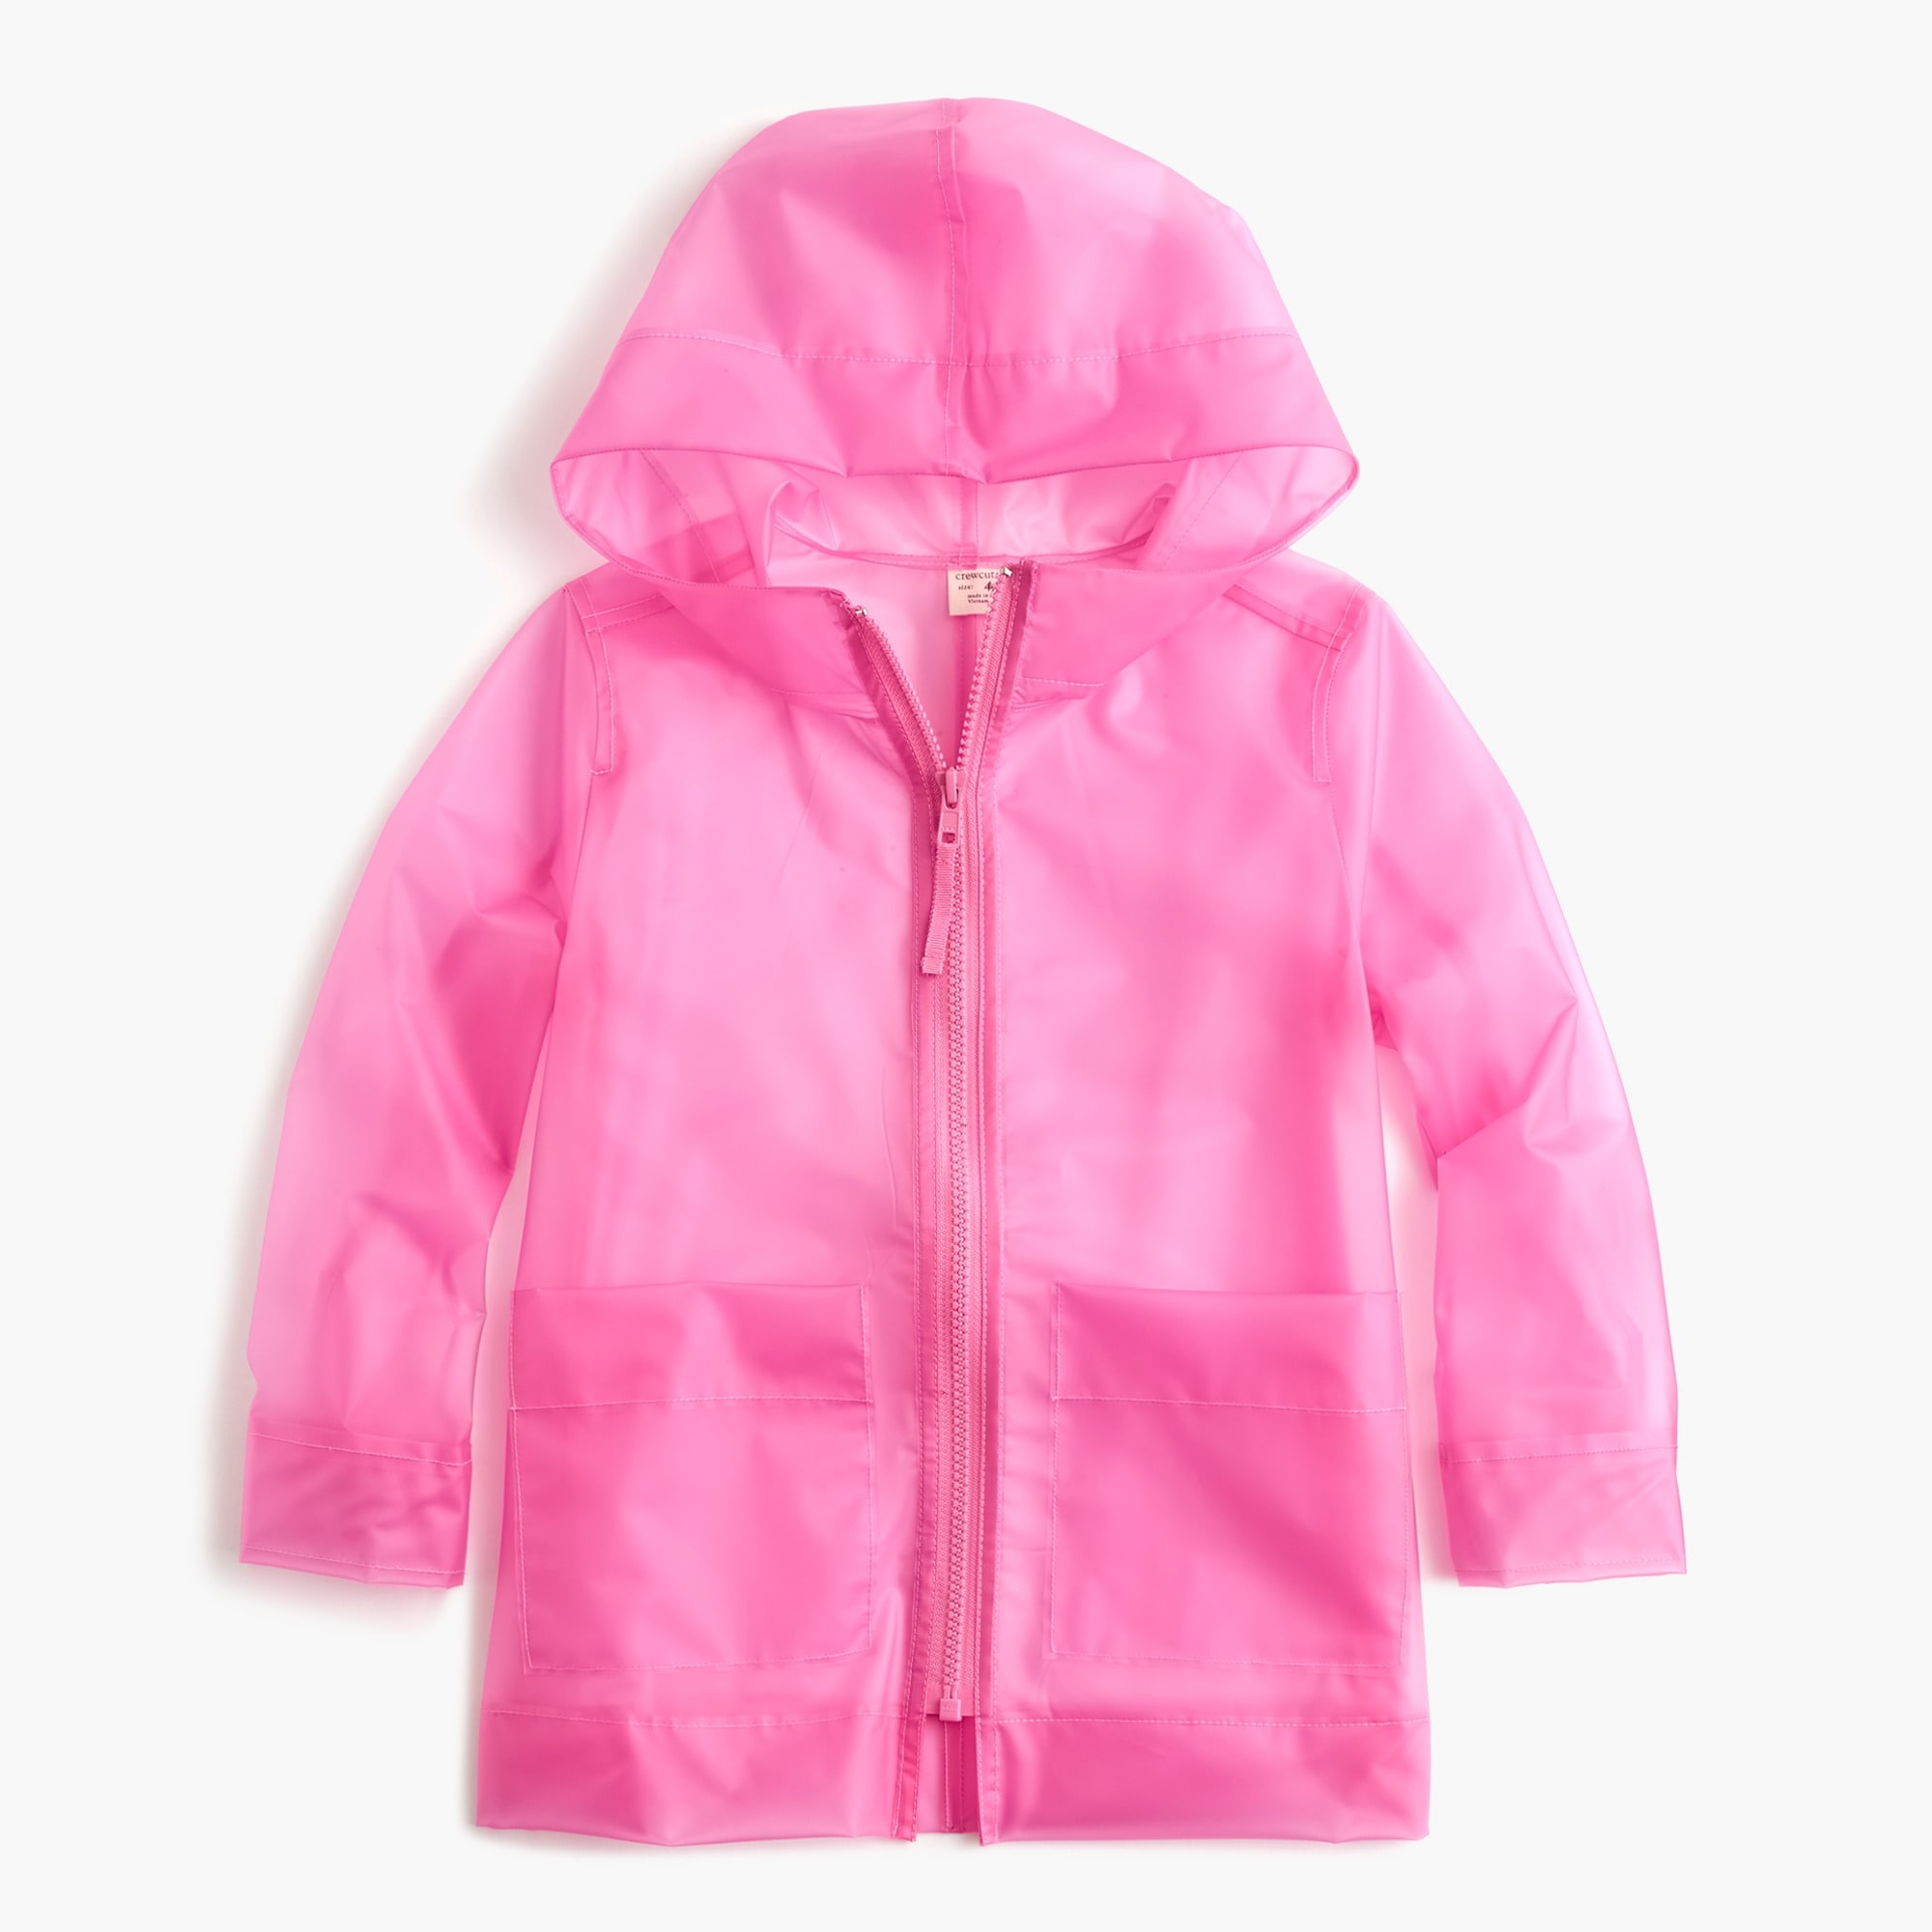 Kids' water-resistant rain jacket